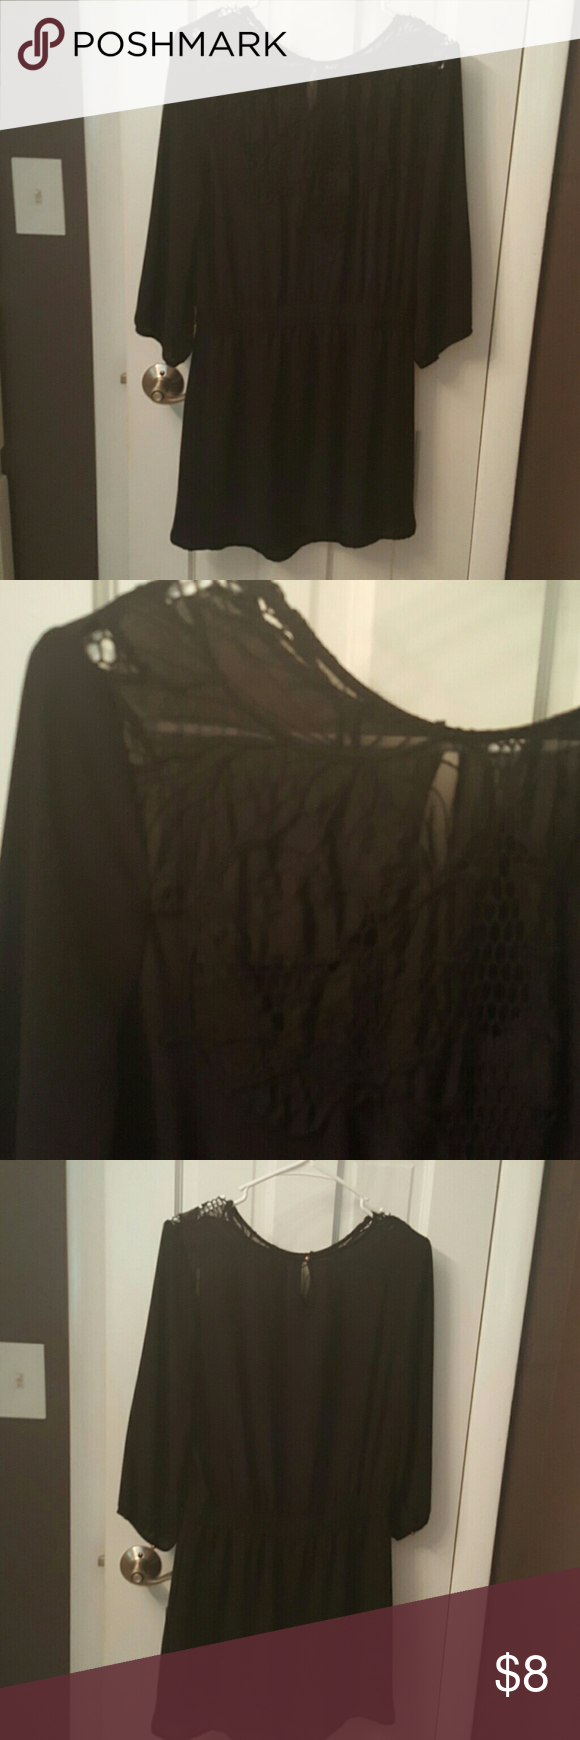 F21 Black dress Beautiful accent at neck. Super cute, excellent condition Forever 21 Dresses Mini